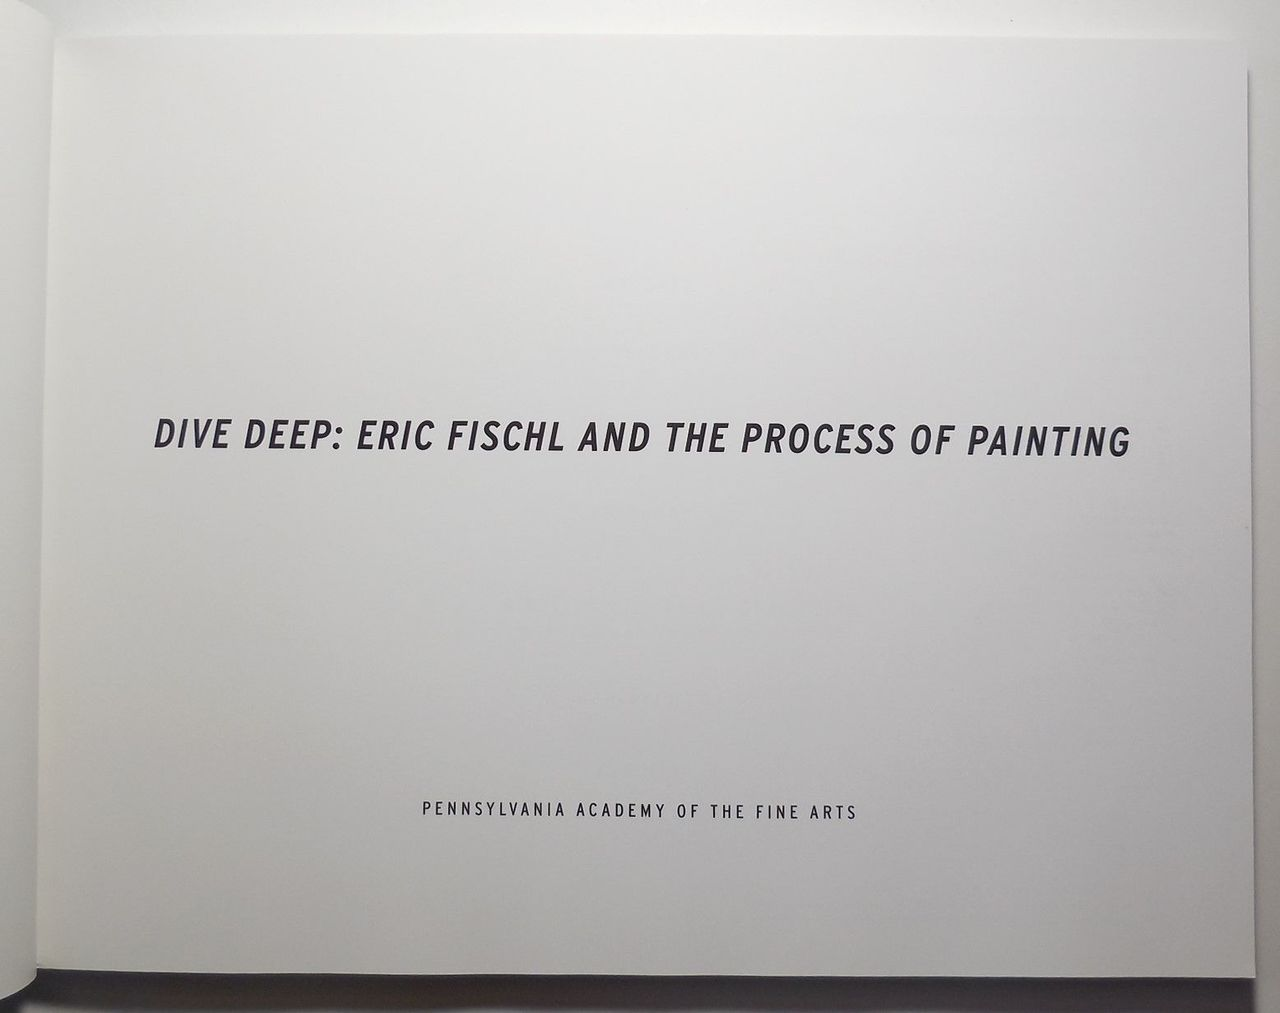 DIVE DEEP: ERIC FISCHL AND THE PROCESS OF PAINTING - 2012